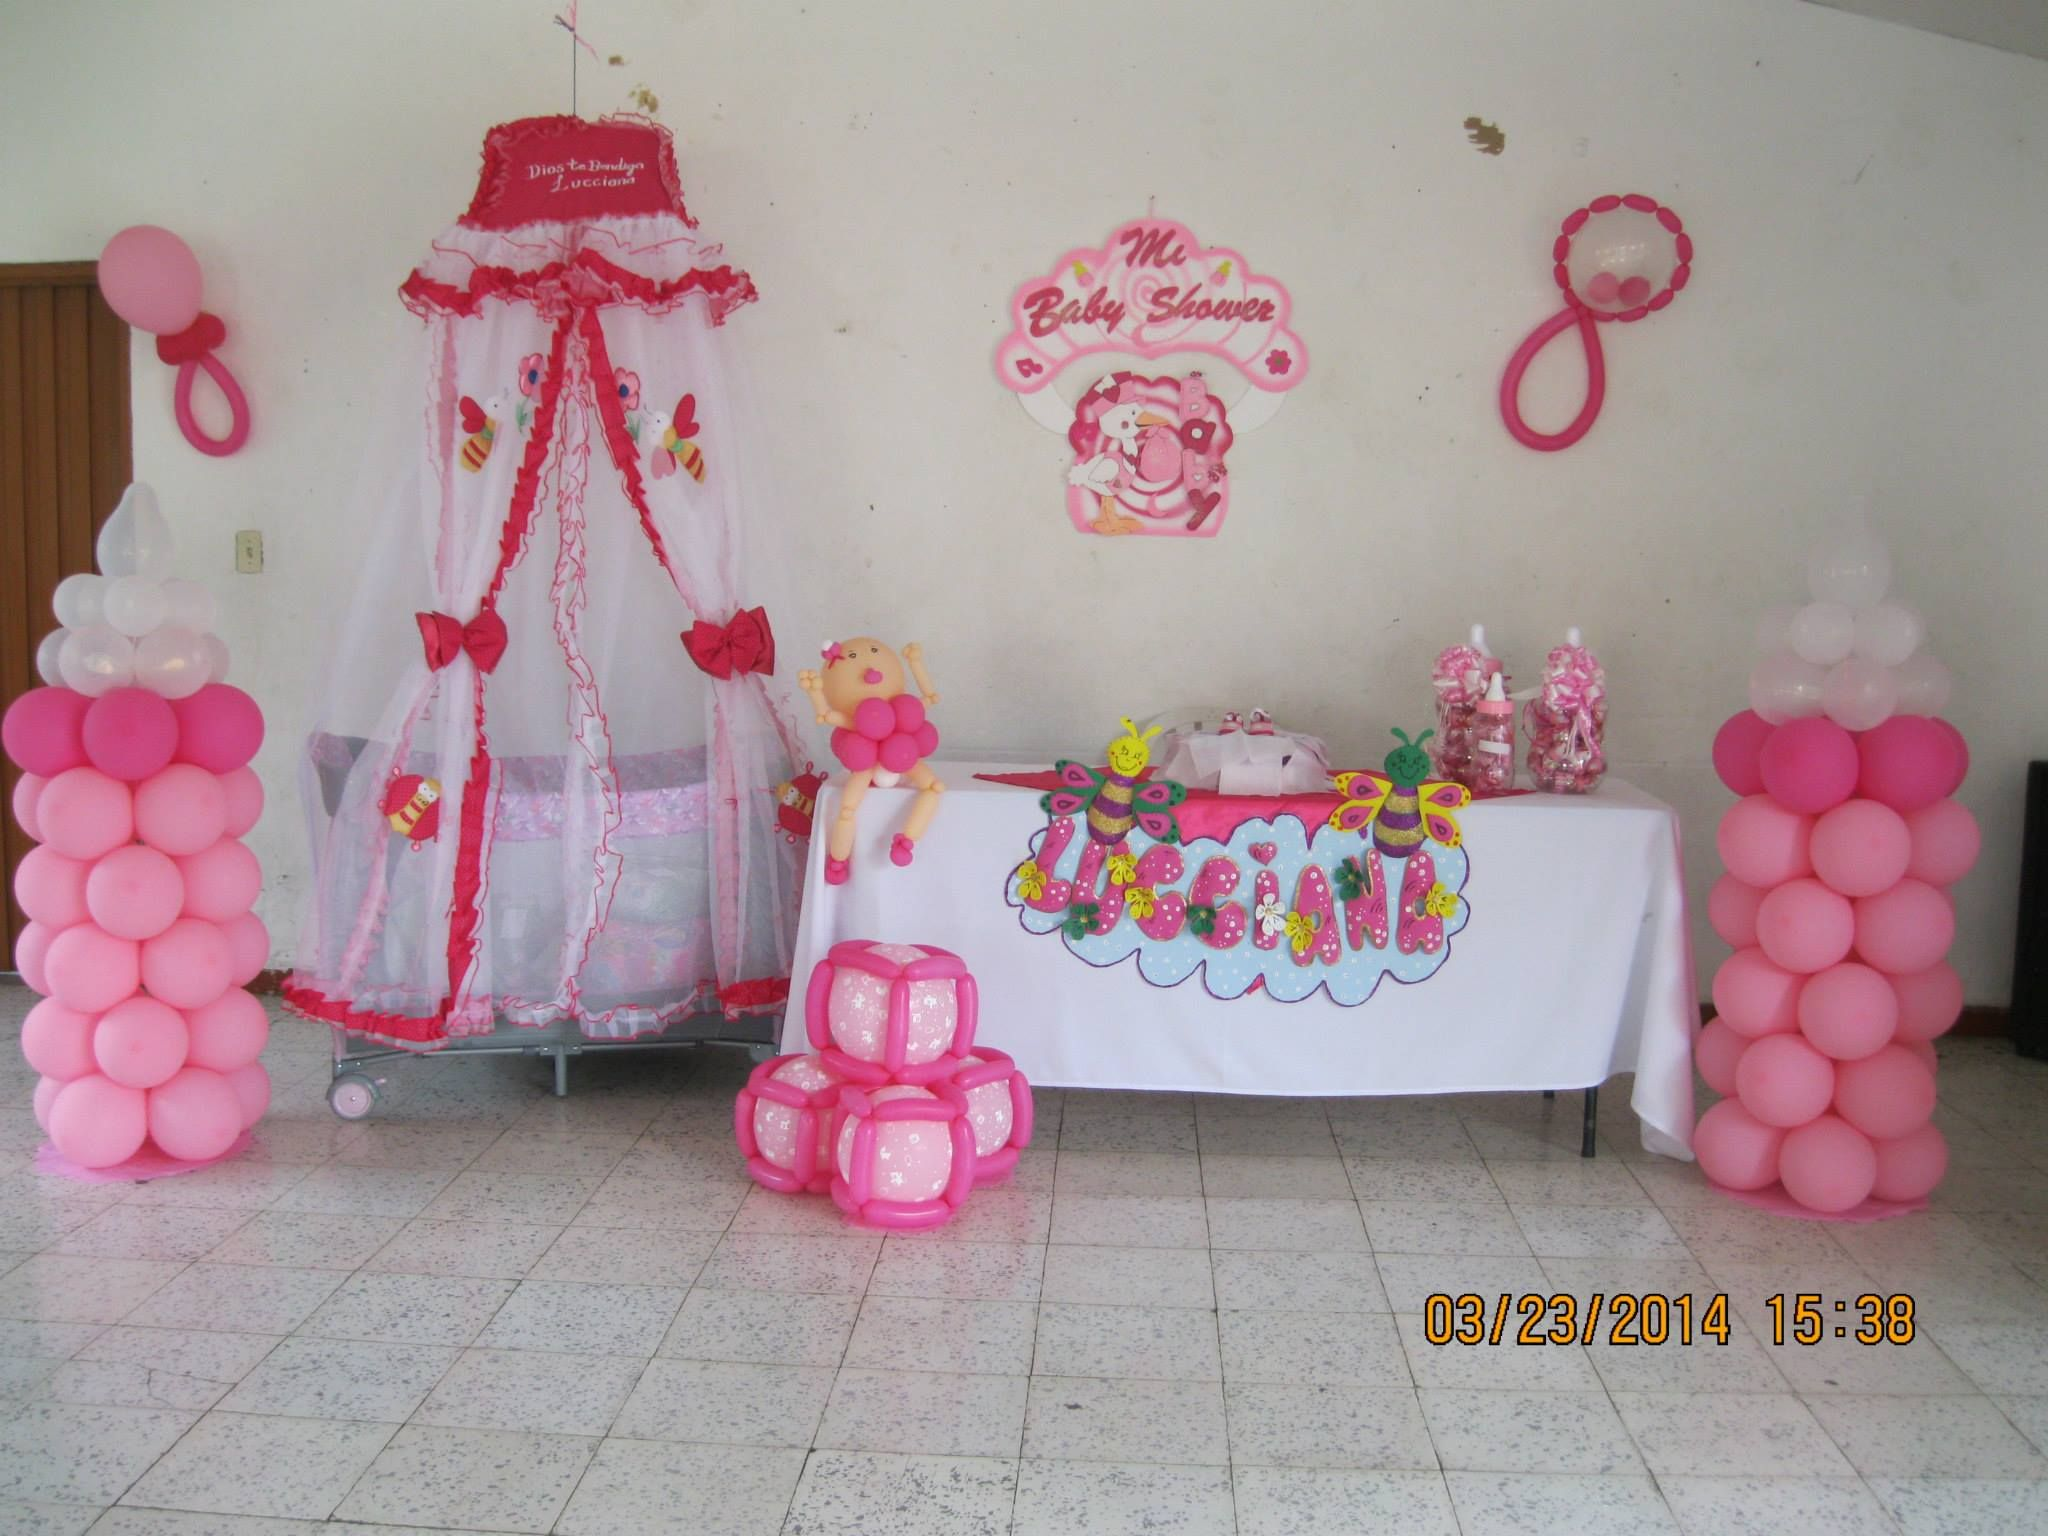 Facebook globos y manualidades la del payasito fondo - Baby shower decoracion ...